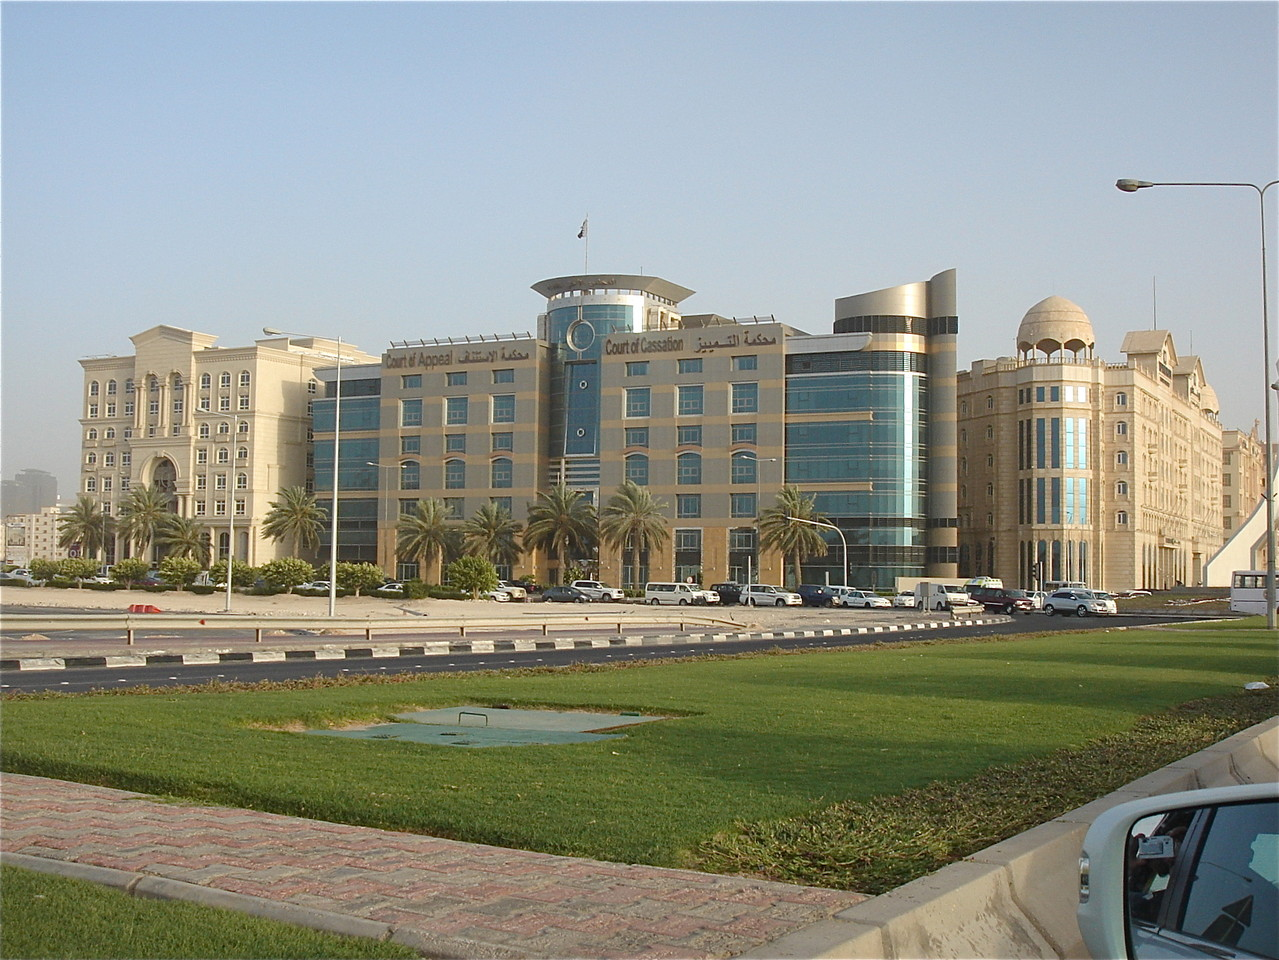 Court of Appeal, Court of Cassation, Doha, Qatar